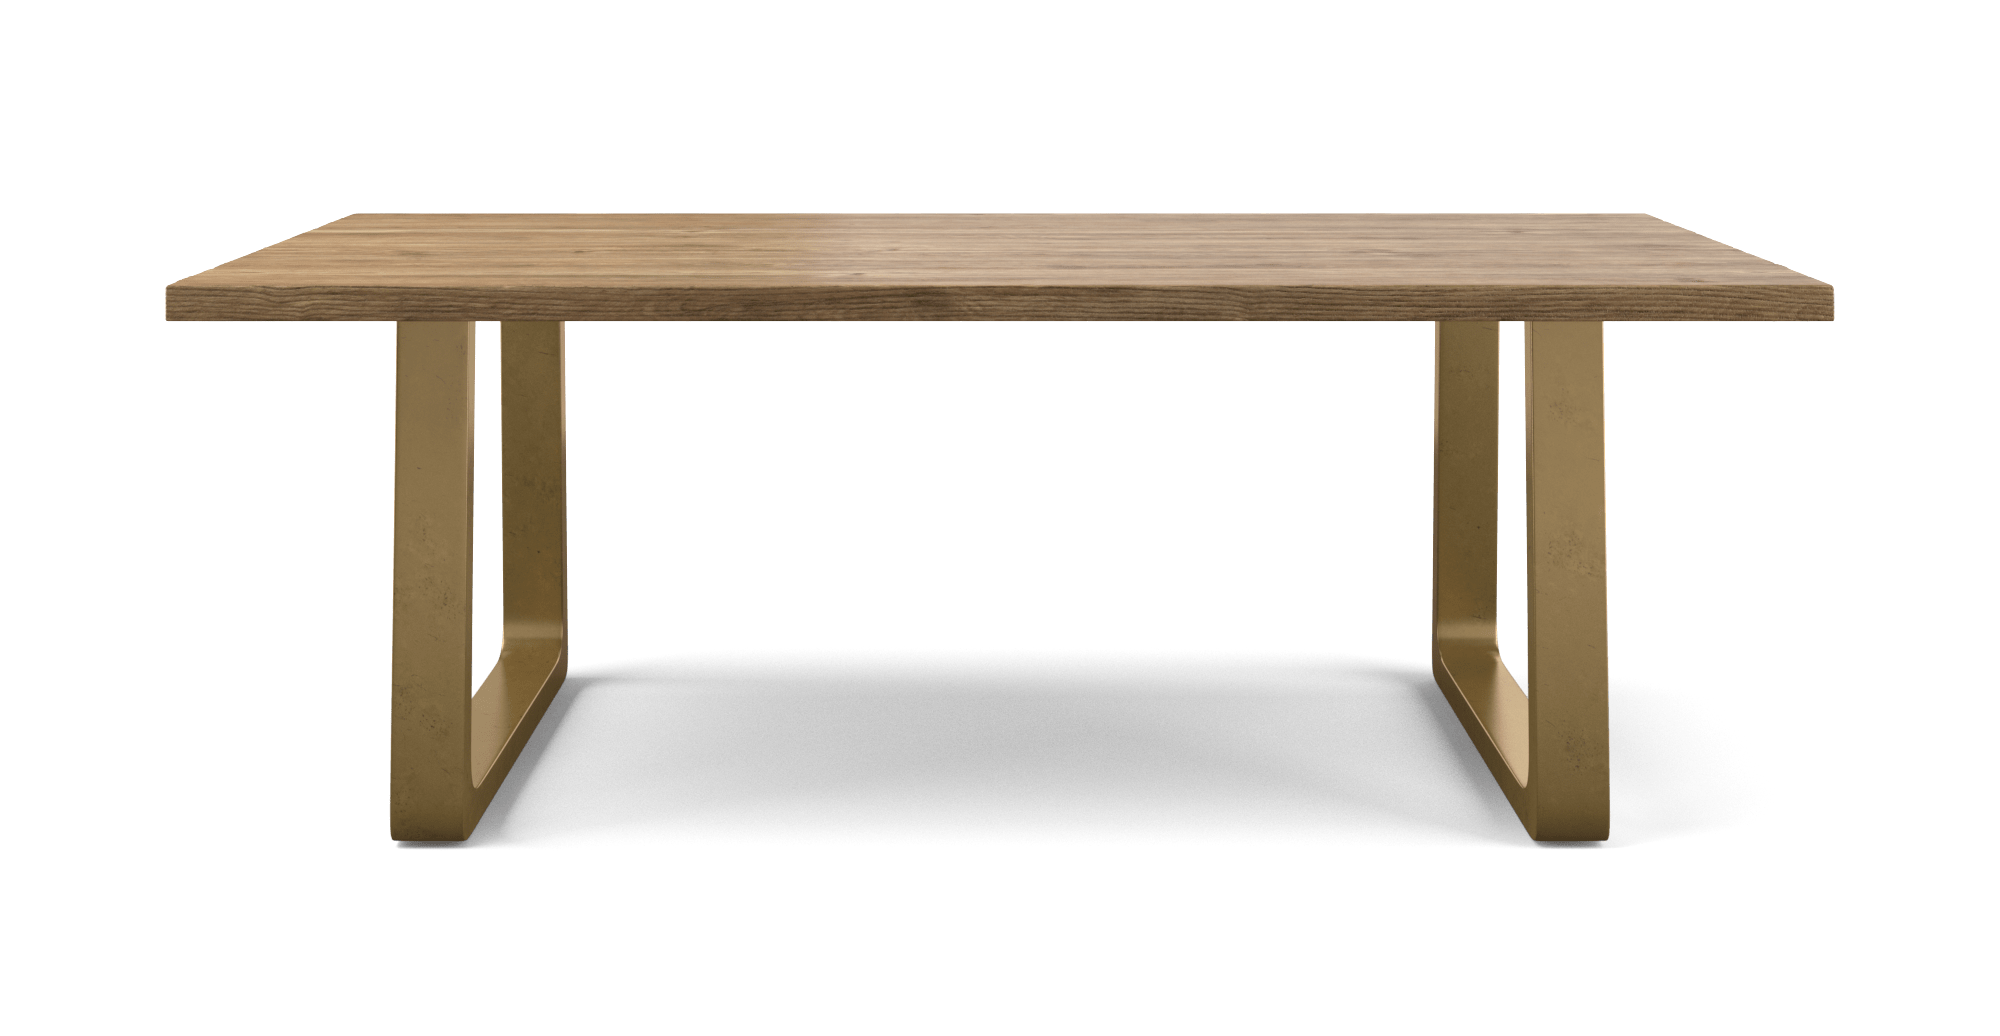 Dining Tables Online Australia Choice Image Dining Table  : watkins dining table 1 from sorahana.info size 2000 x 1036 png 510kB